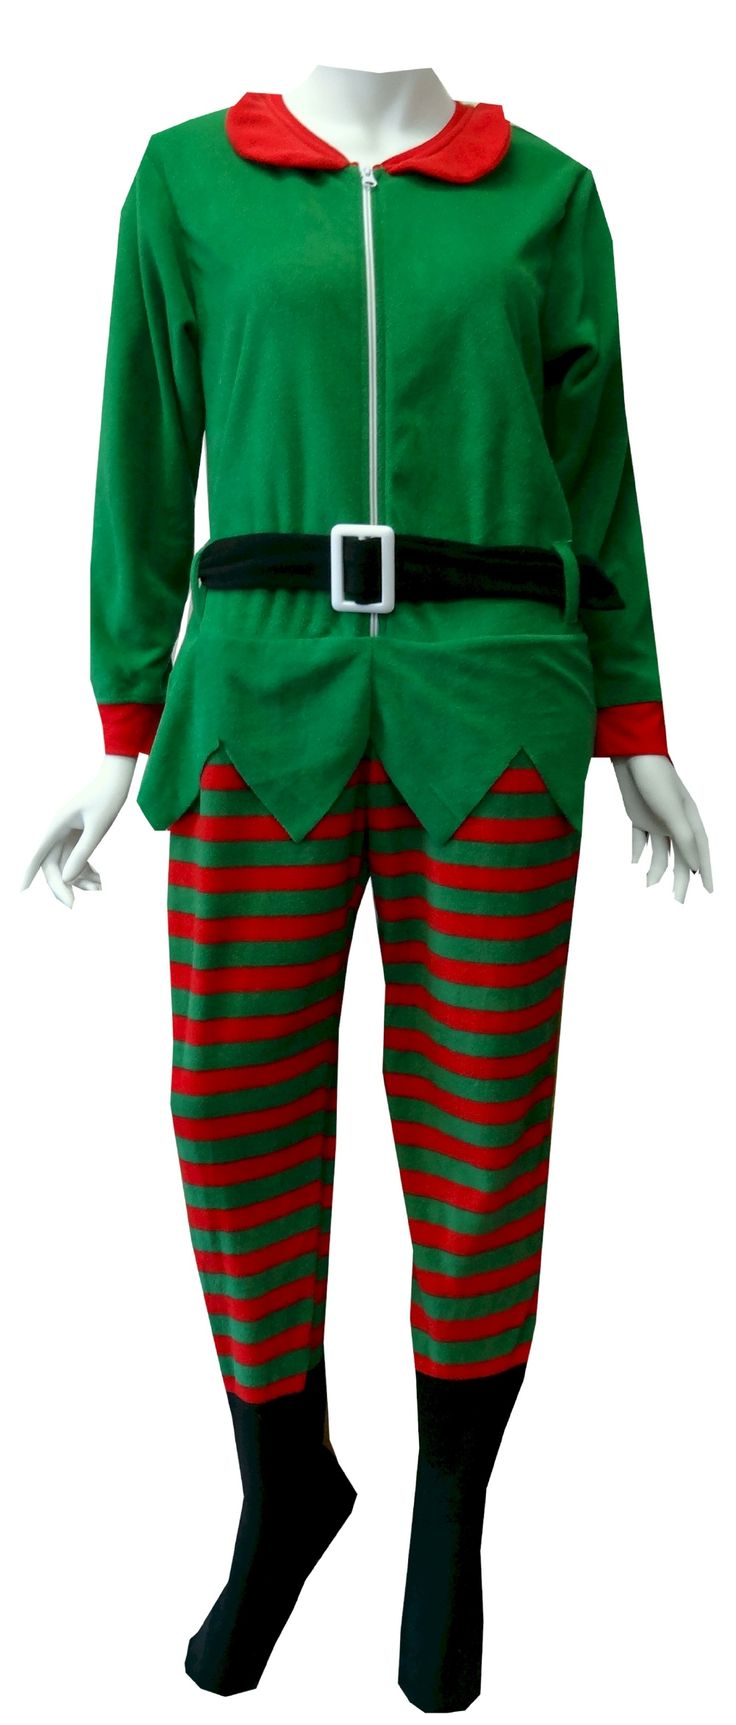 Christmas Footie Pajamas